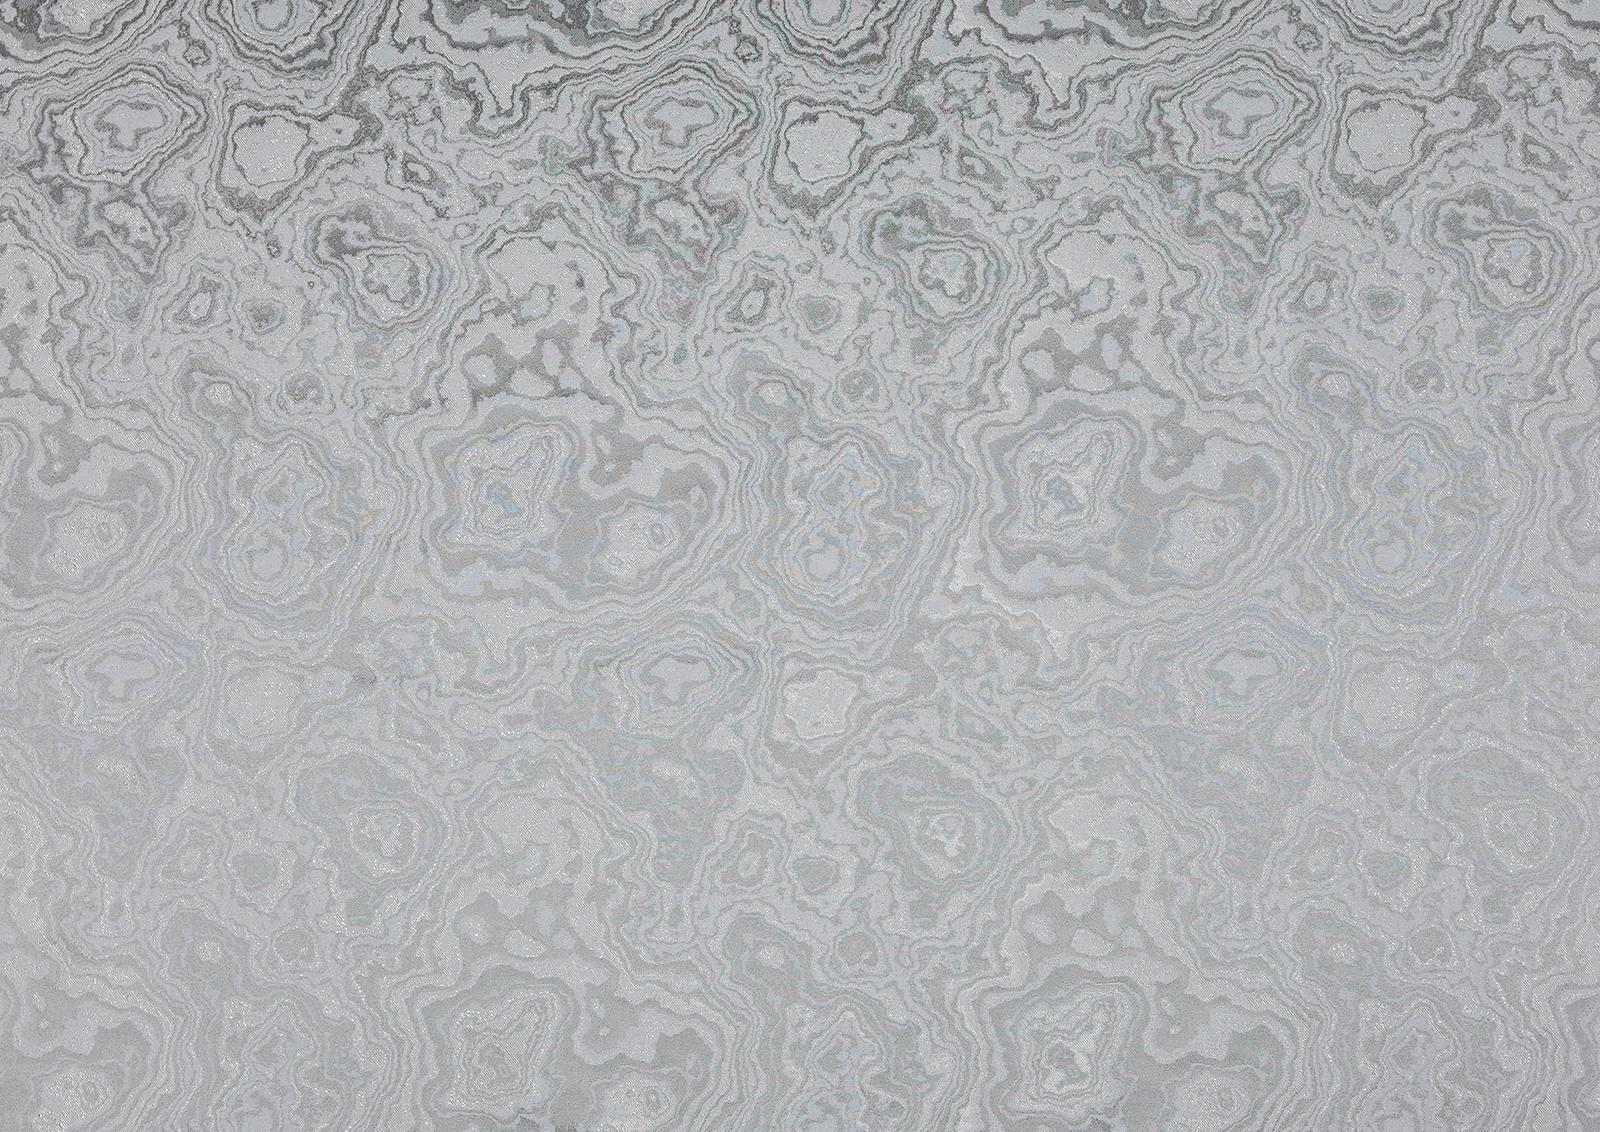 MINERAL 03 Silver Marble Shades